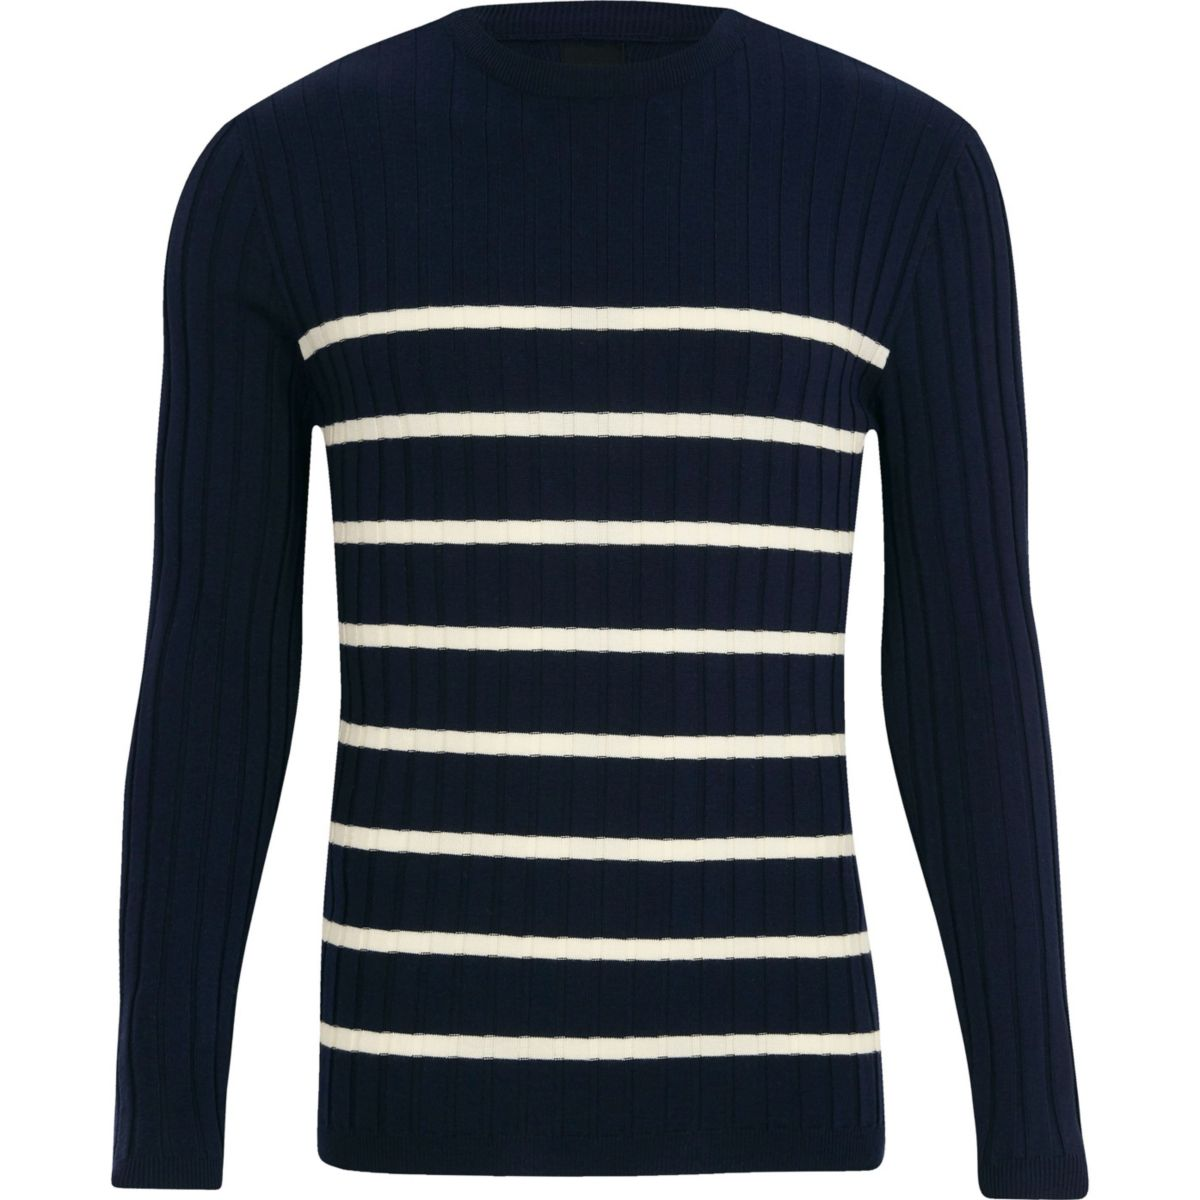 Navy knit stripe muscle fit crew neck jumper